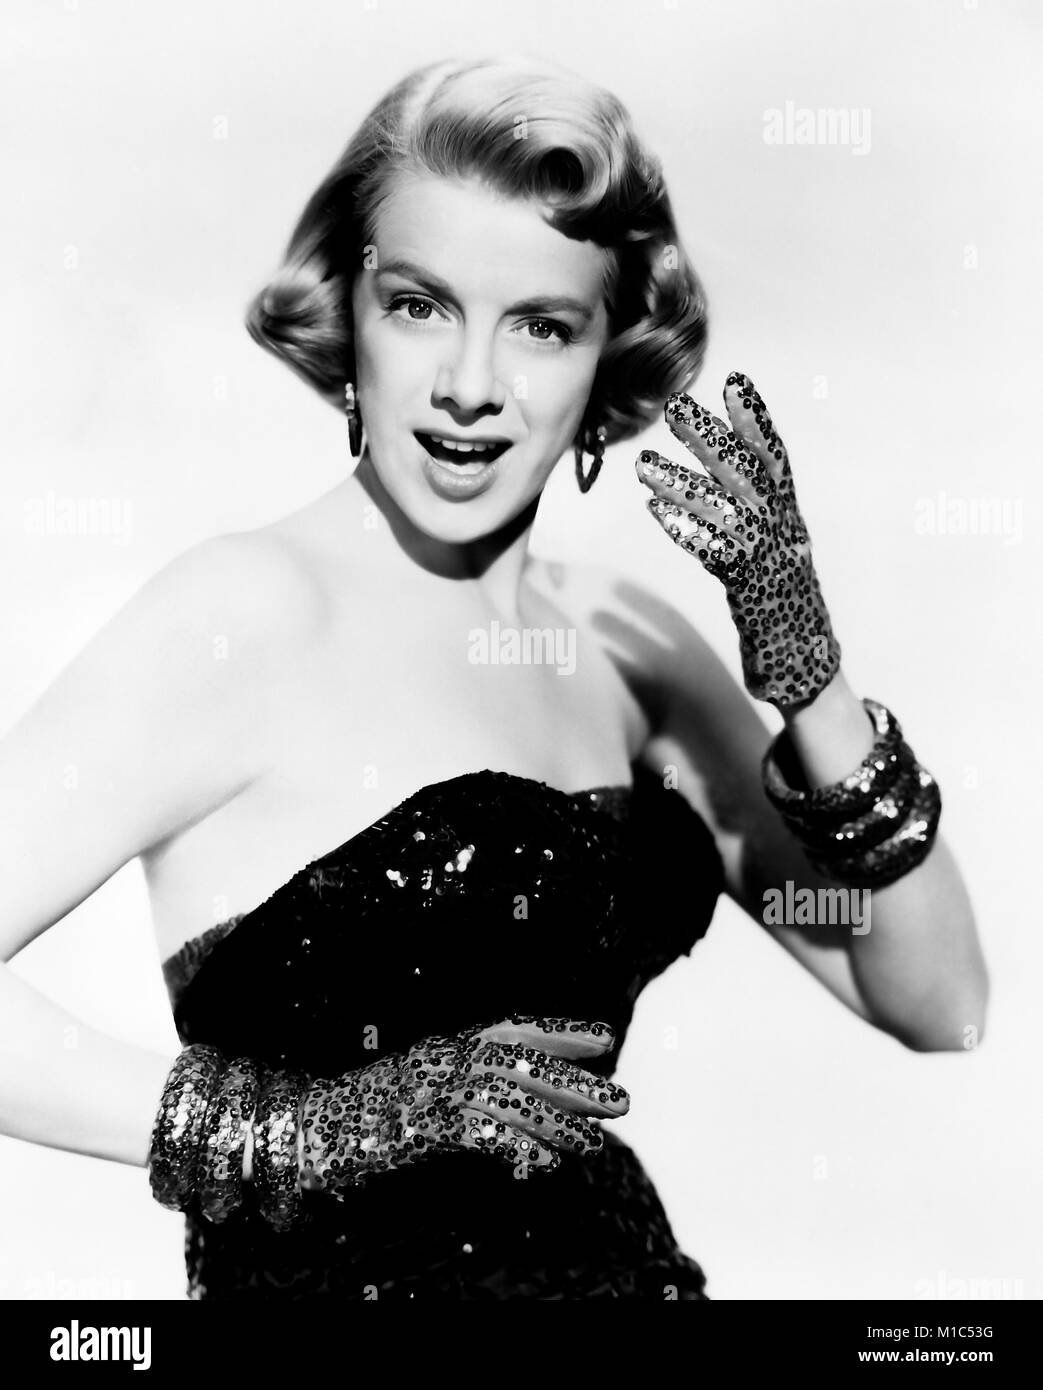 white christmas 1954 paramoiunbt pictures film with rosemary clooney stock image - Black And White Christmas Movie